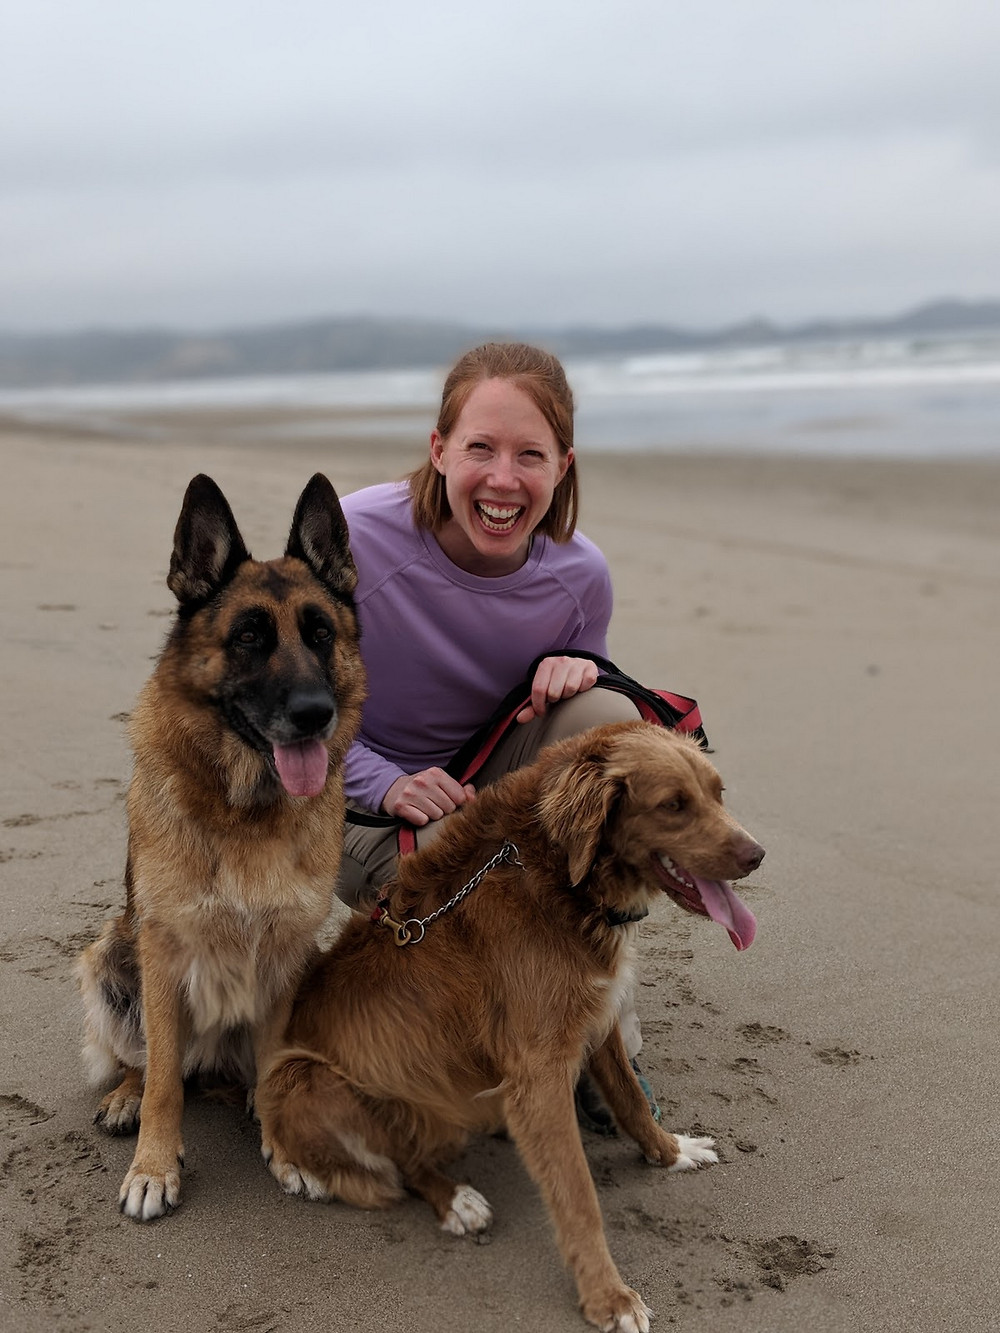 Walking Carly (the German Shepard) and Benny on the beach!